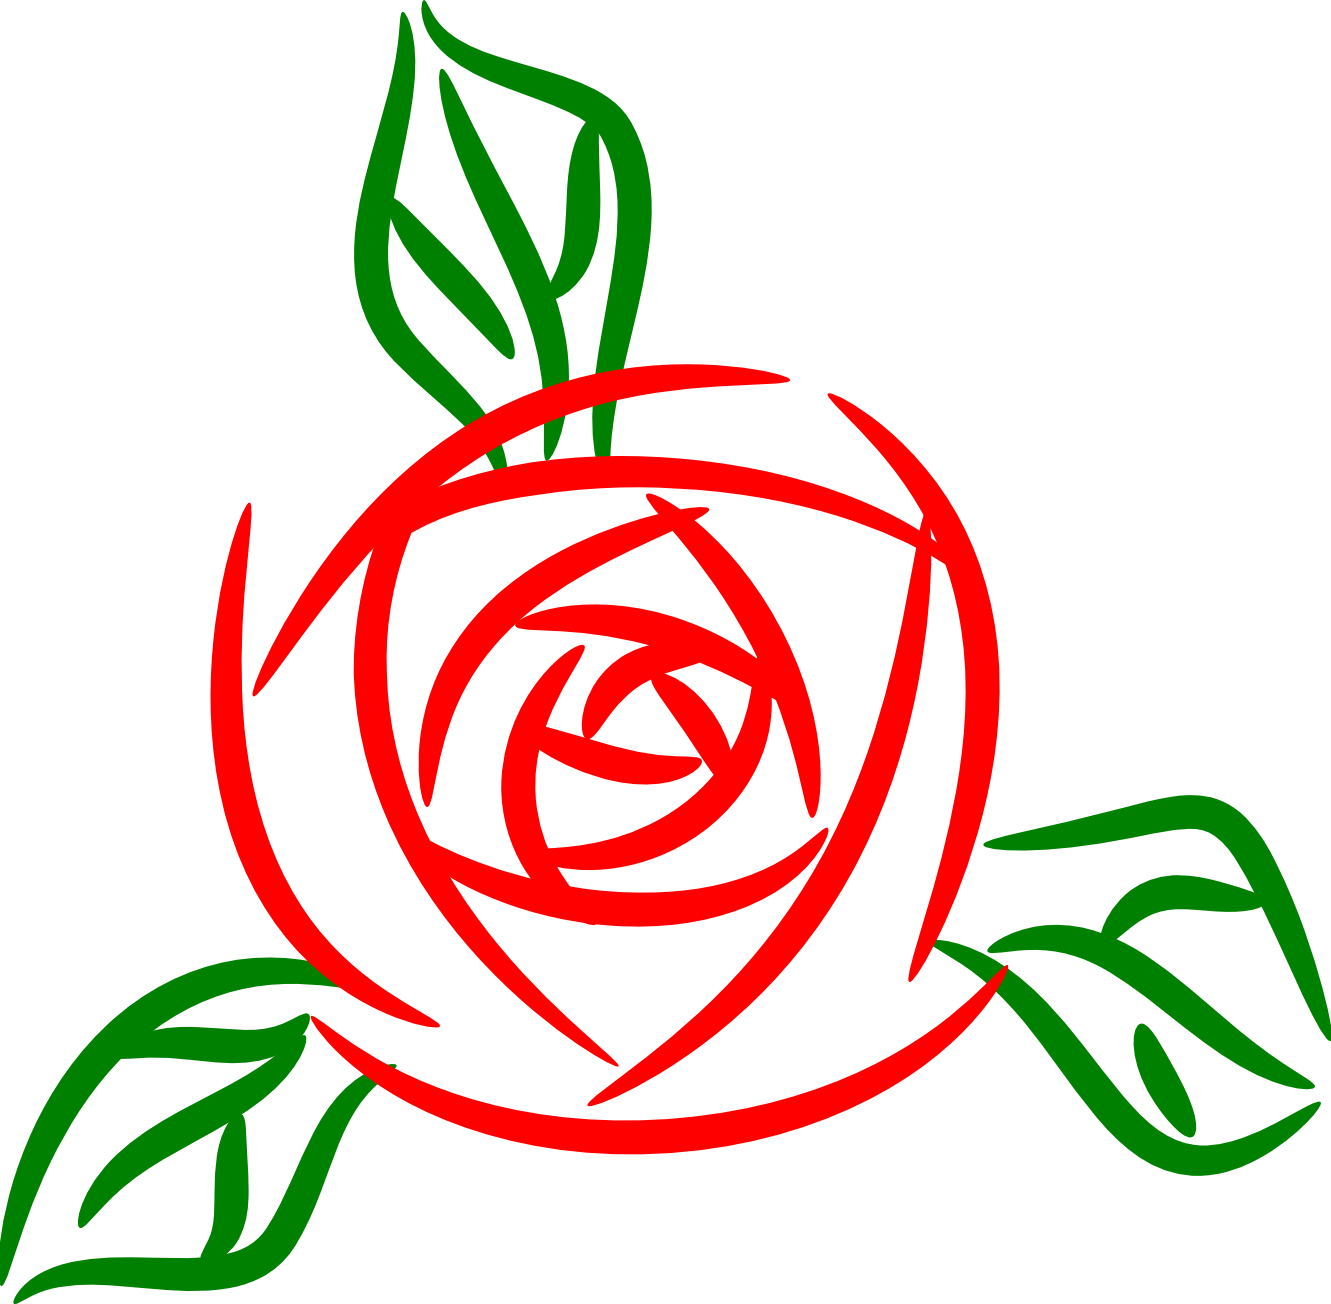 Graphics Of Roses.